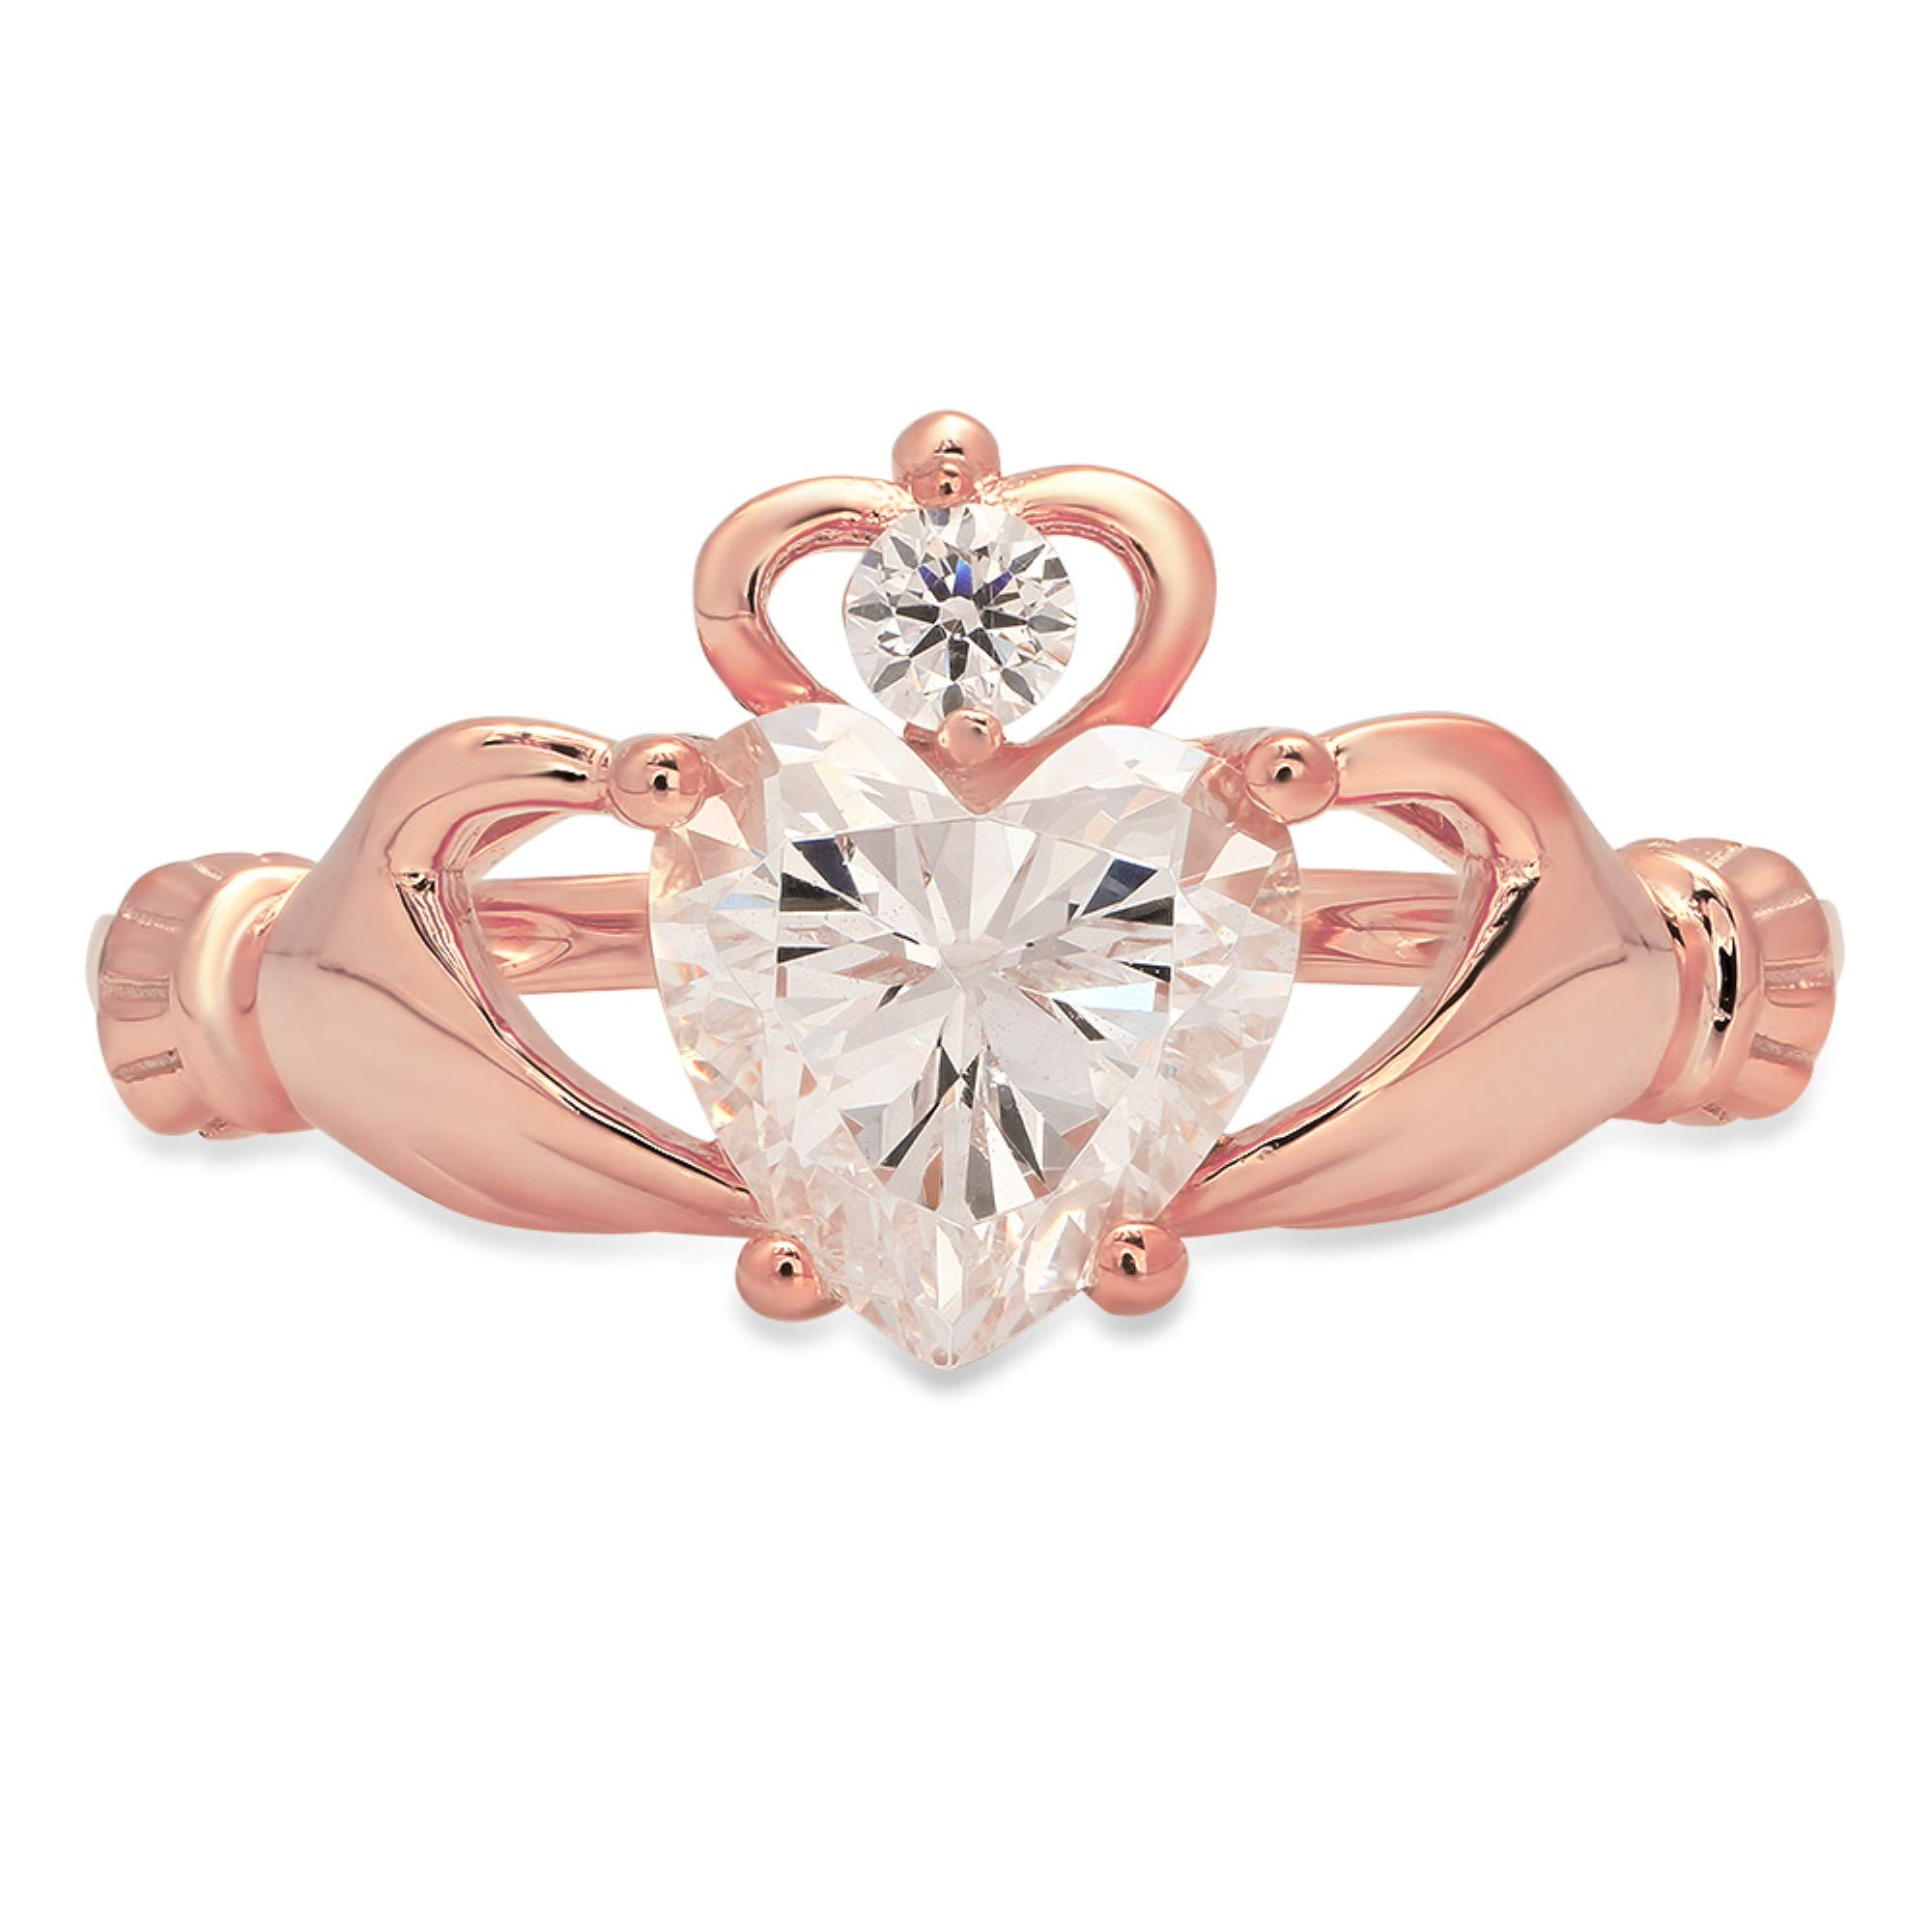 1.52ct Heart Cut Irish Celtic Claddagh Solitaire Highest Quality White lab created Sapphire Ideal VVS1 D & Diamond Simulant Designer Modern Statement Ring 14k Rose Gold, Size 6.25 Clara Pucci